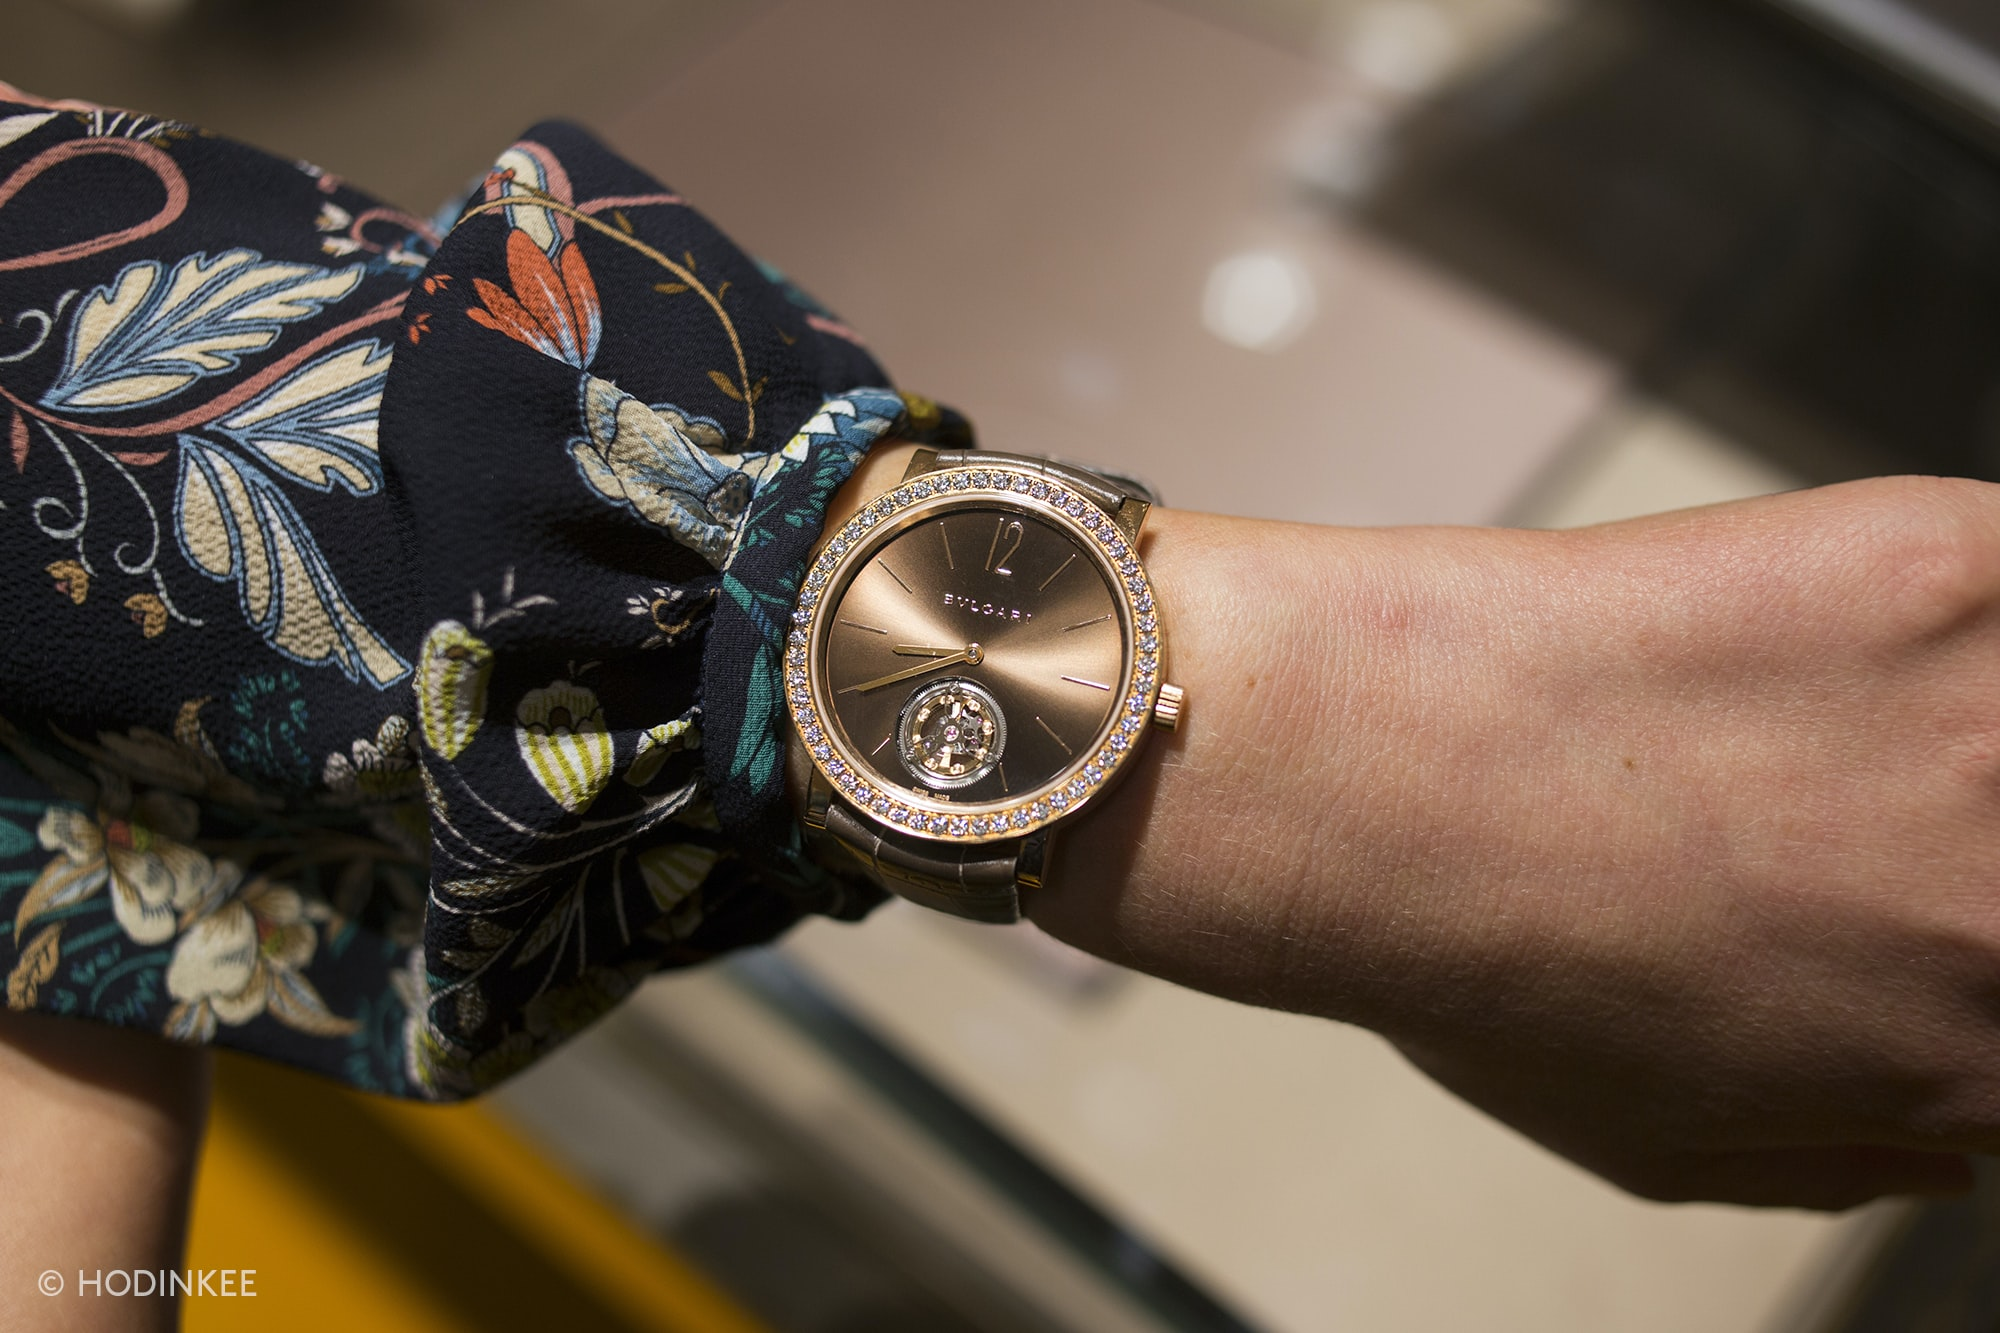 Photo Report: The Bulgari x HODINKEE Celebration Of The Octo Finissimo Minute Repeater In New York City Photo Report: The Bulgari x HODINKEE Celebration Of The Octo Finissimo Minute Repeater In New York City 20010094 copy